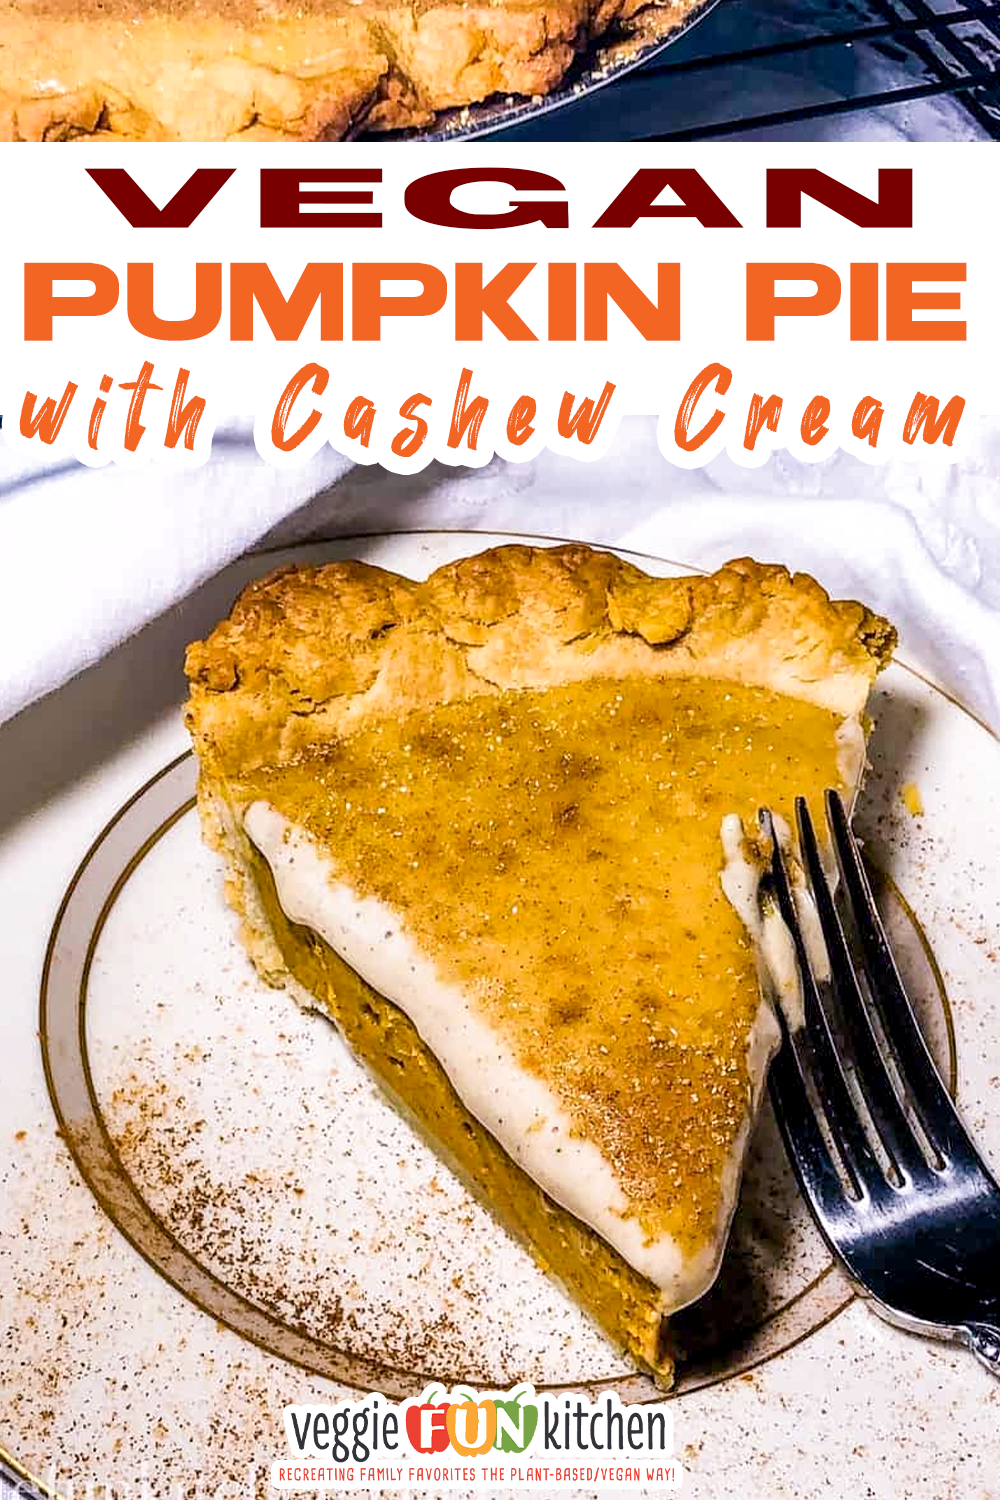 Vegan Pumpkin Pie Is Made Smooth And Creamy Using Raw Cashews Topped With A Cinnamon Cashew Cream Layer For A Season